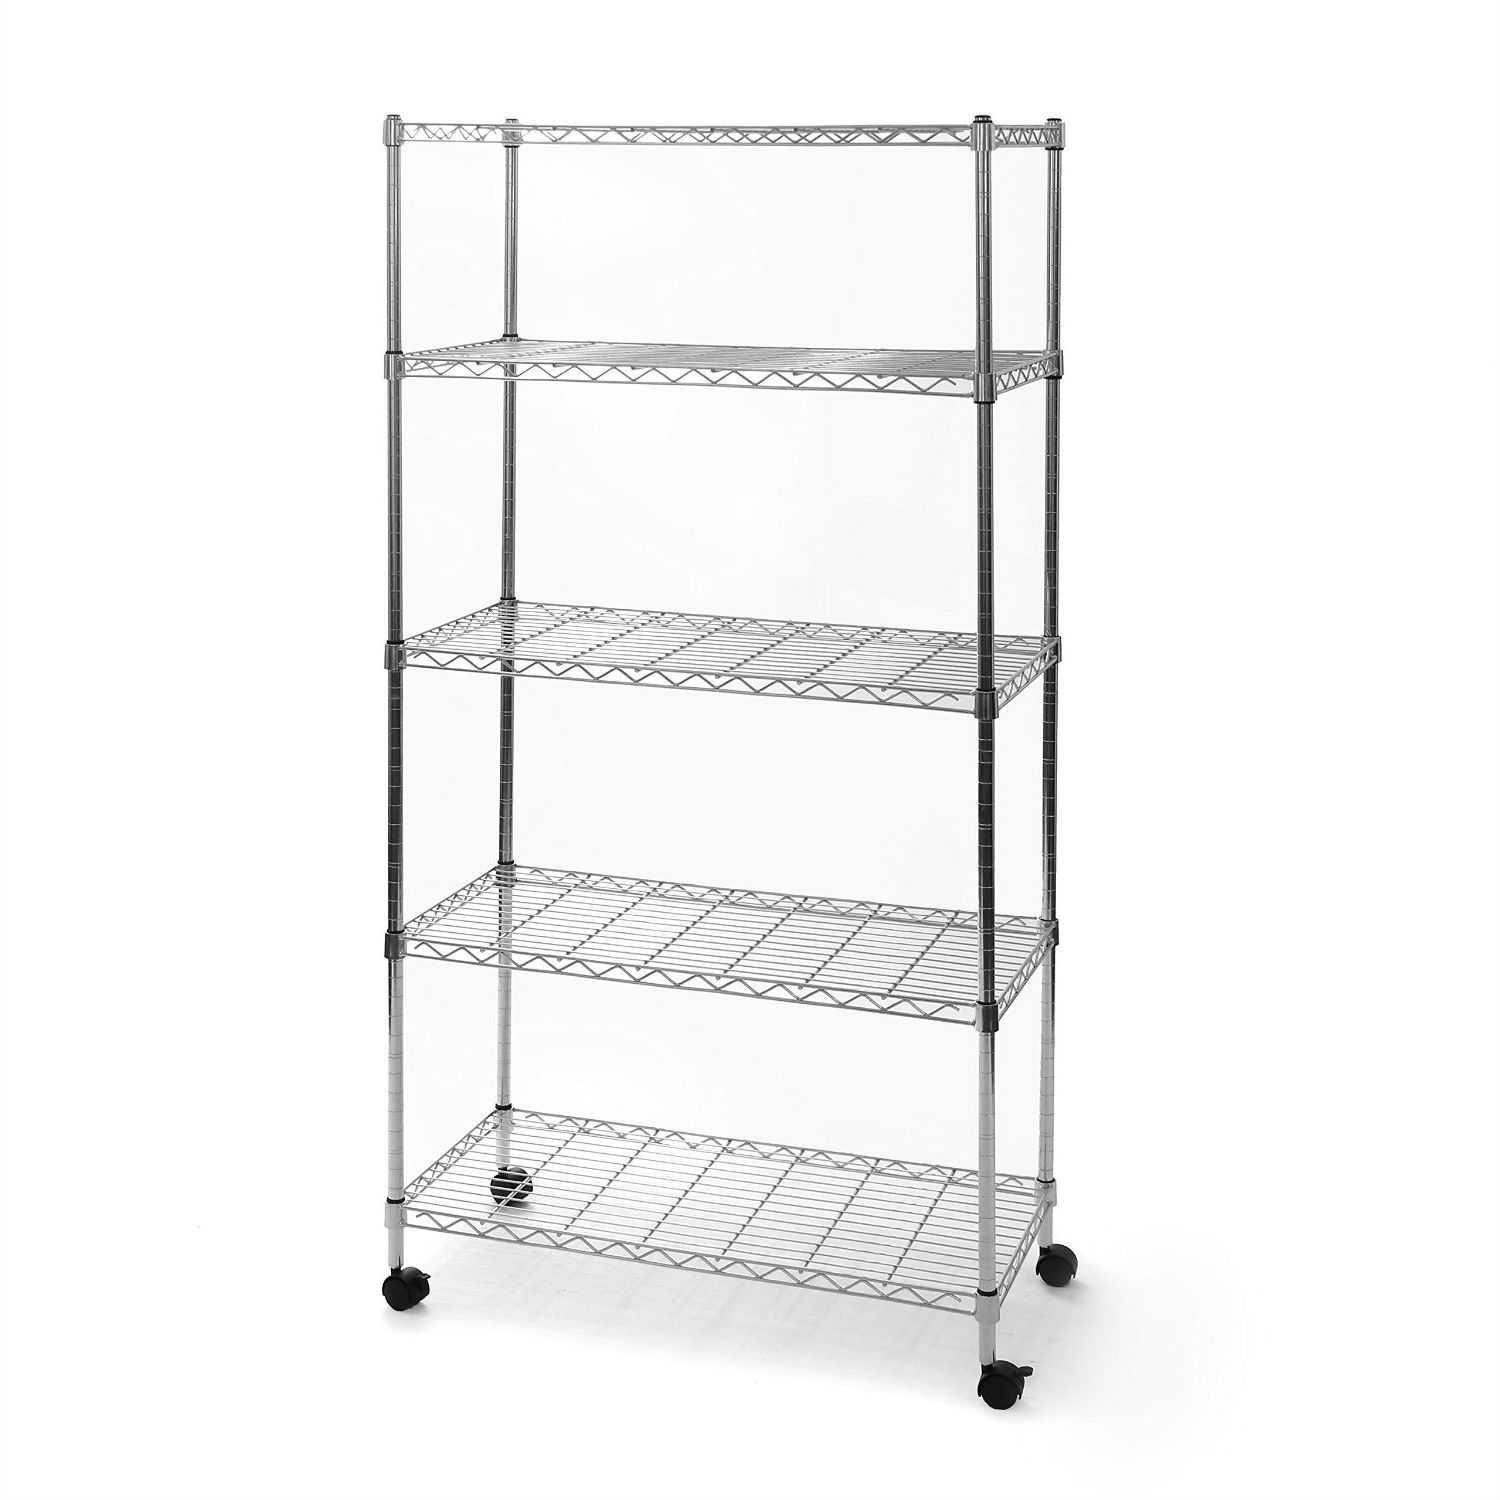 5 Shelf Storage Shelving Unit With Removable Locking Casters Wheels